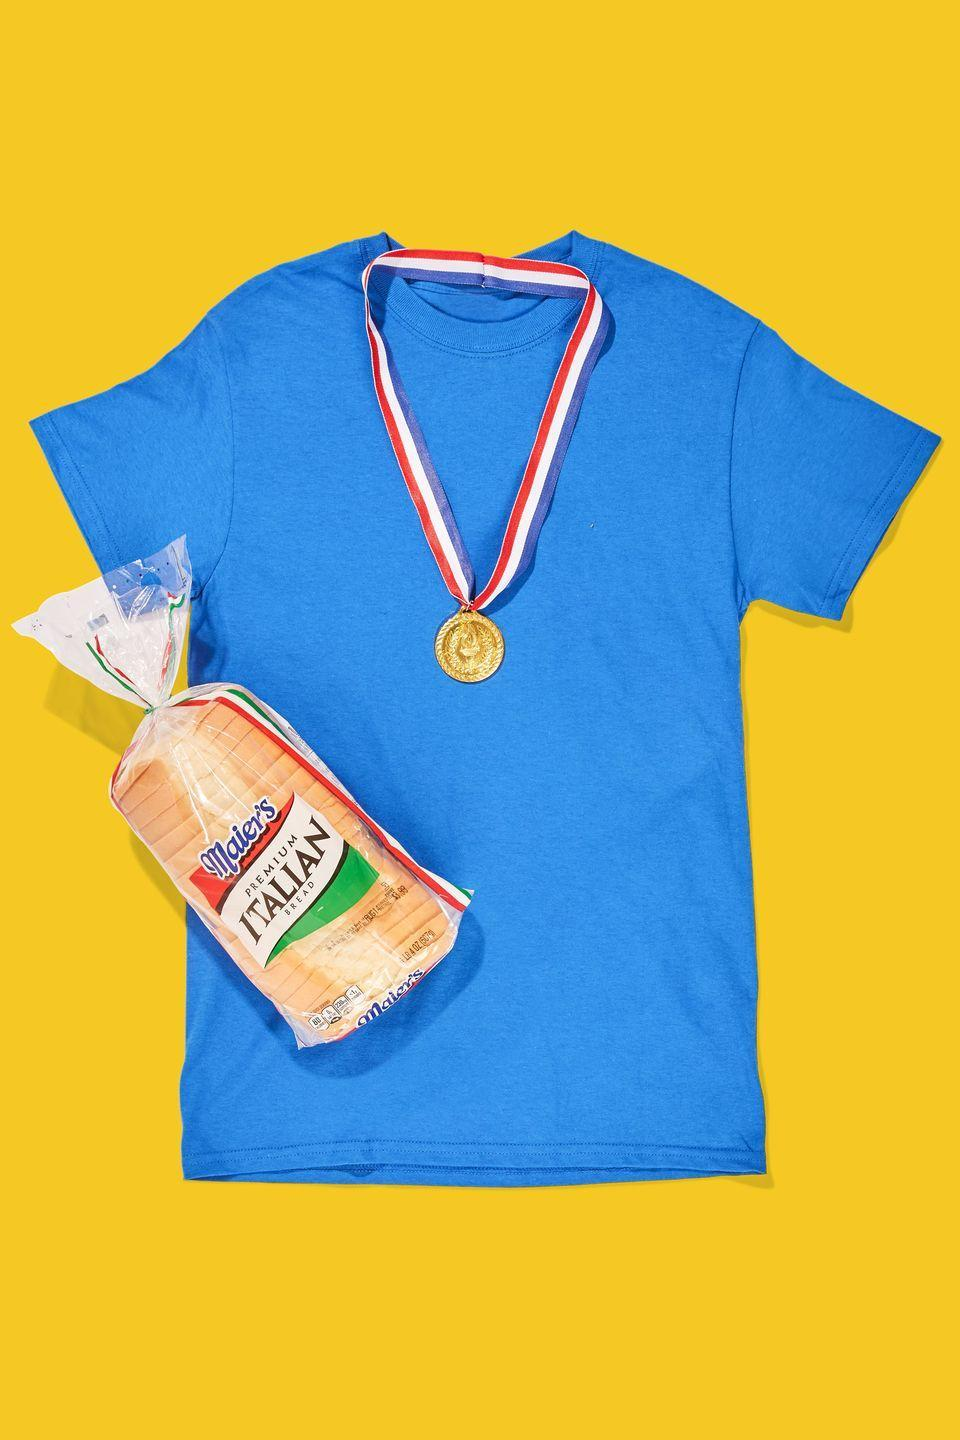 """<p>Throw on a brightly colored t-shirt and a fake medal, grab a loaf, and you're ready to get that bread. </p><p><a class=""""link rapid-noclick-resp"""" href=""""https://www.amazon.com/Costume-Accessory-Olympic-Style-Plastic/dp/B005EJCHV2/?tag=syn-yahoo-20&ascsubtag=%5Bartid%7C10070.g.490%5Bsrc%7Cyahoo-us"""" rel=""""nofollow noopener"""" target=""""_blank"""" data-ylk=""""slk:SHOP FAKE MEDALS"""">SHOP FAKE MEDALS</a> </p>"""